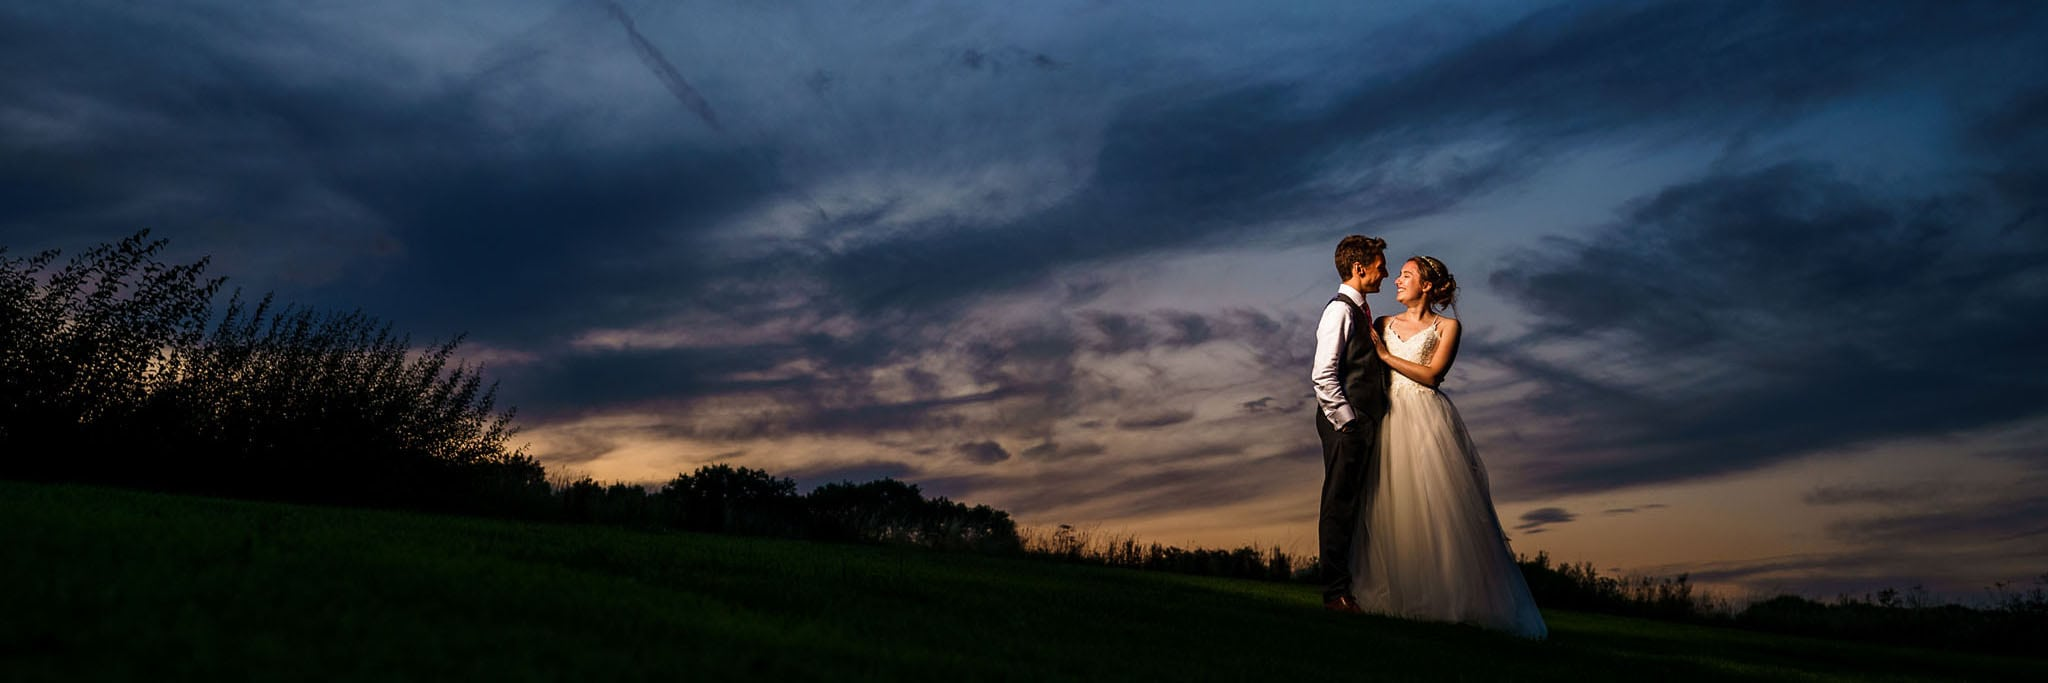 evening bride and groom portrait at Wethele Manor